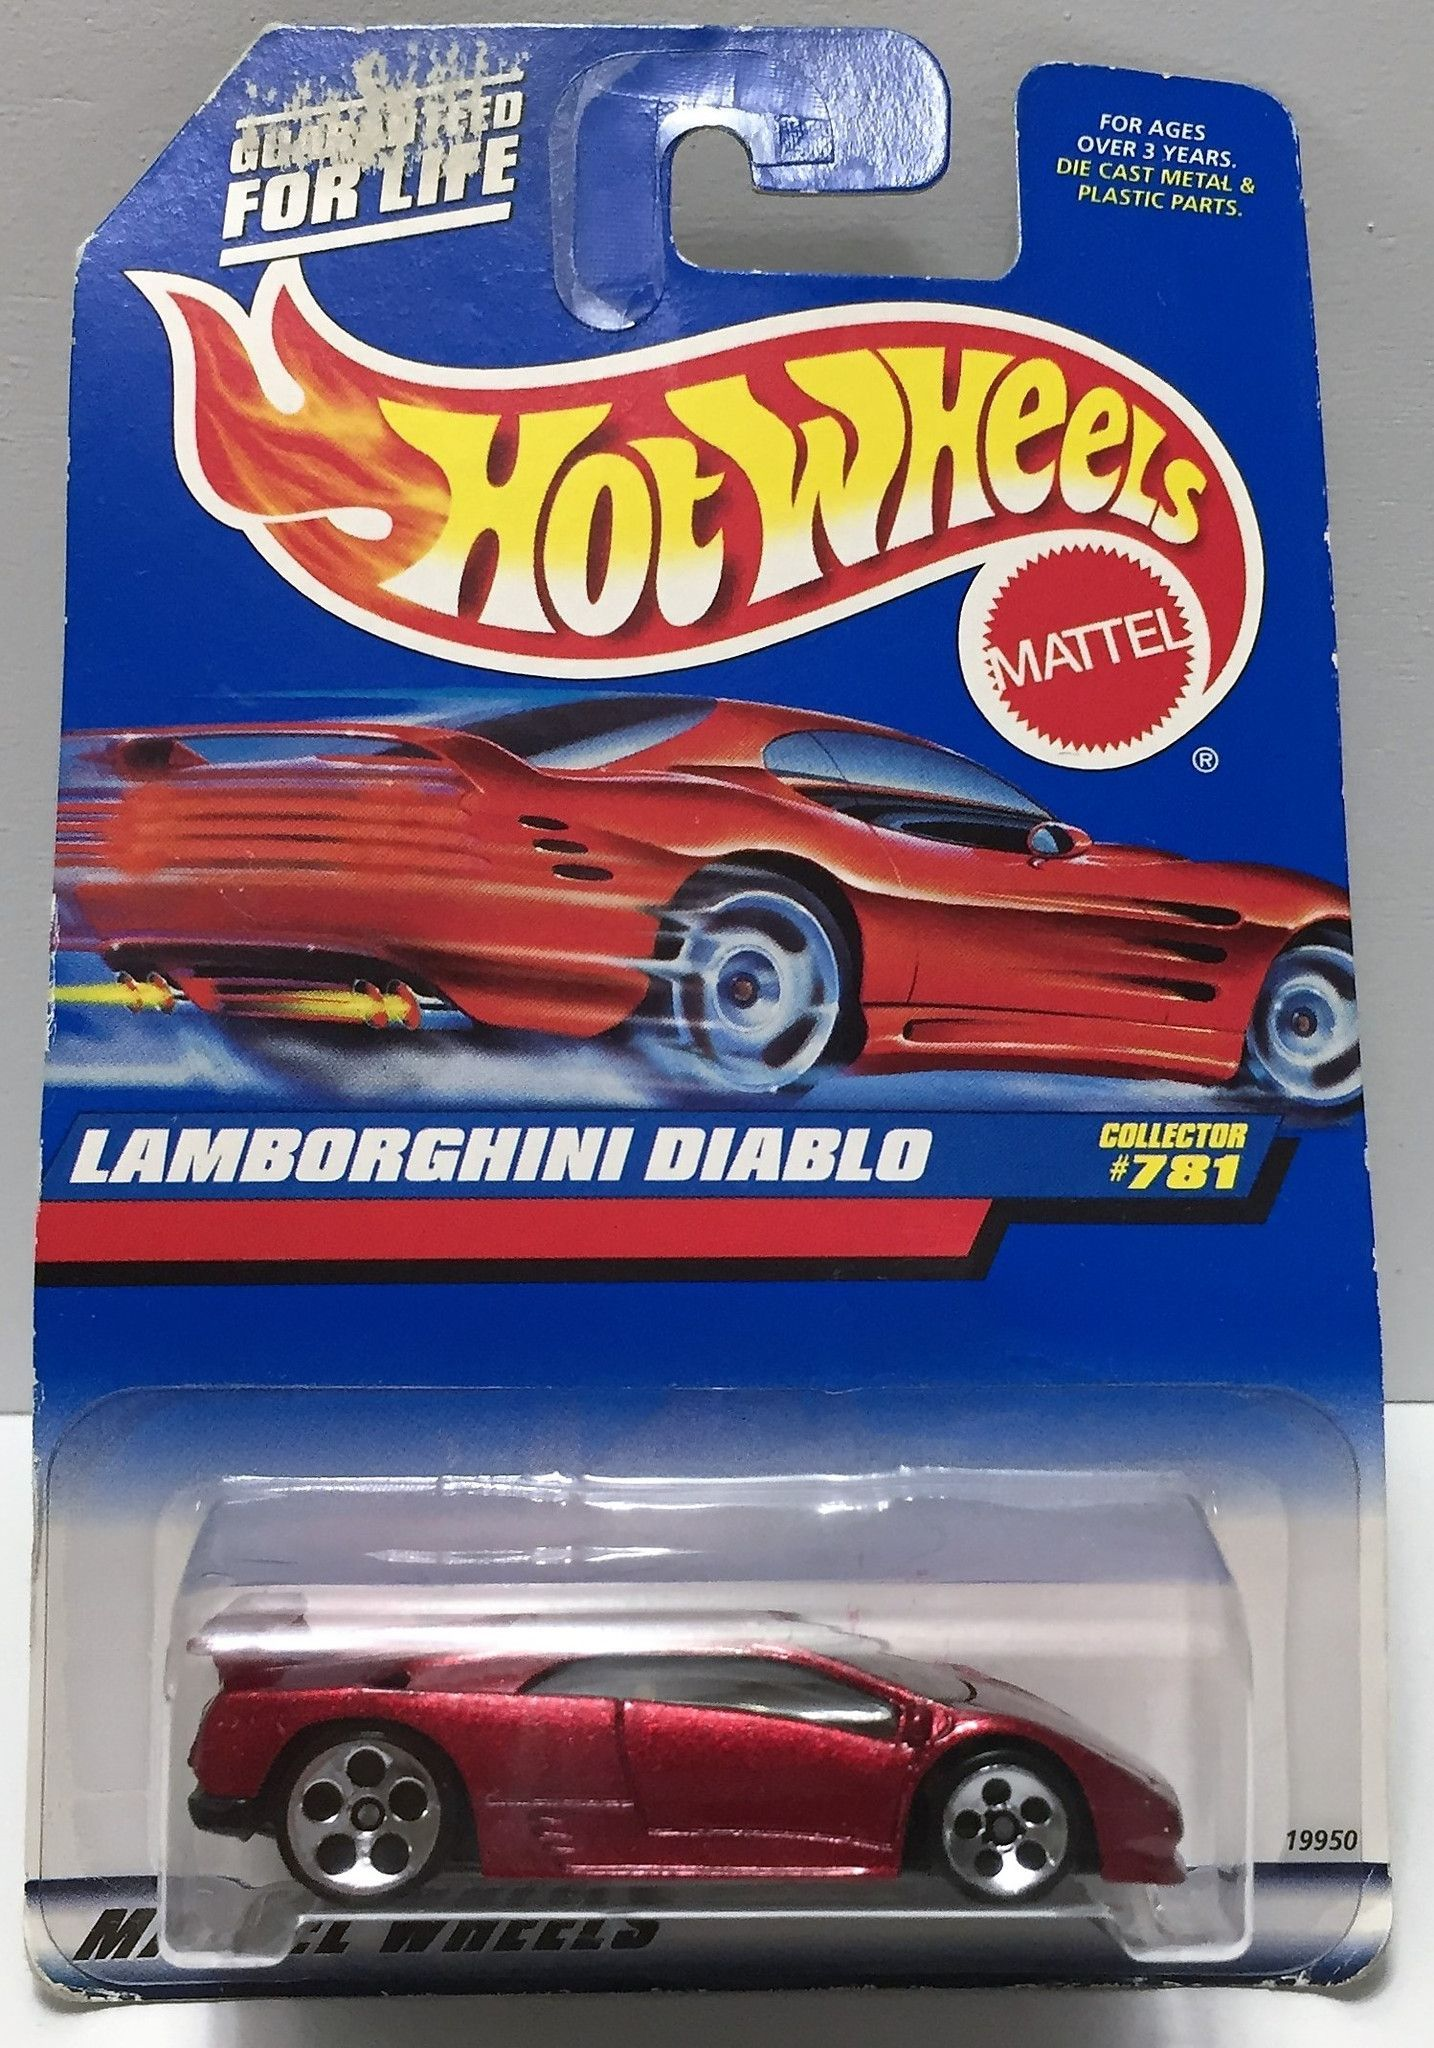 0b6d2c73b70ef88cbd795a73195a933c Mesmerizing Hot Wheels Speed Machines Lamborghini Countach Cars Trend